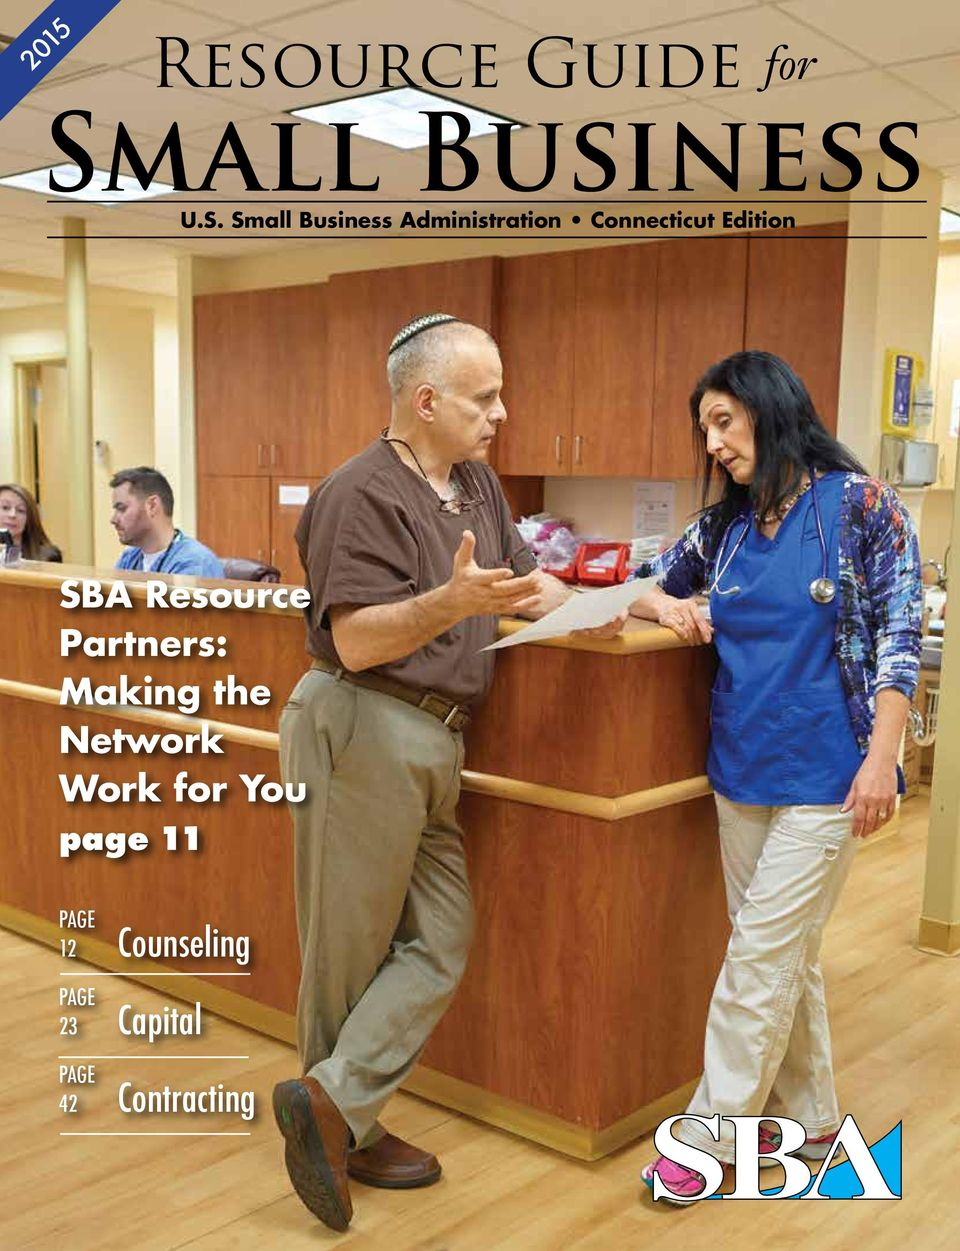 Small Business Administration Connecticut Edition